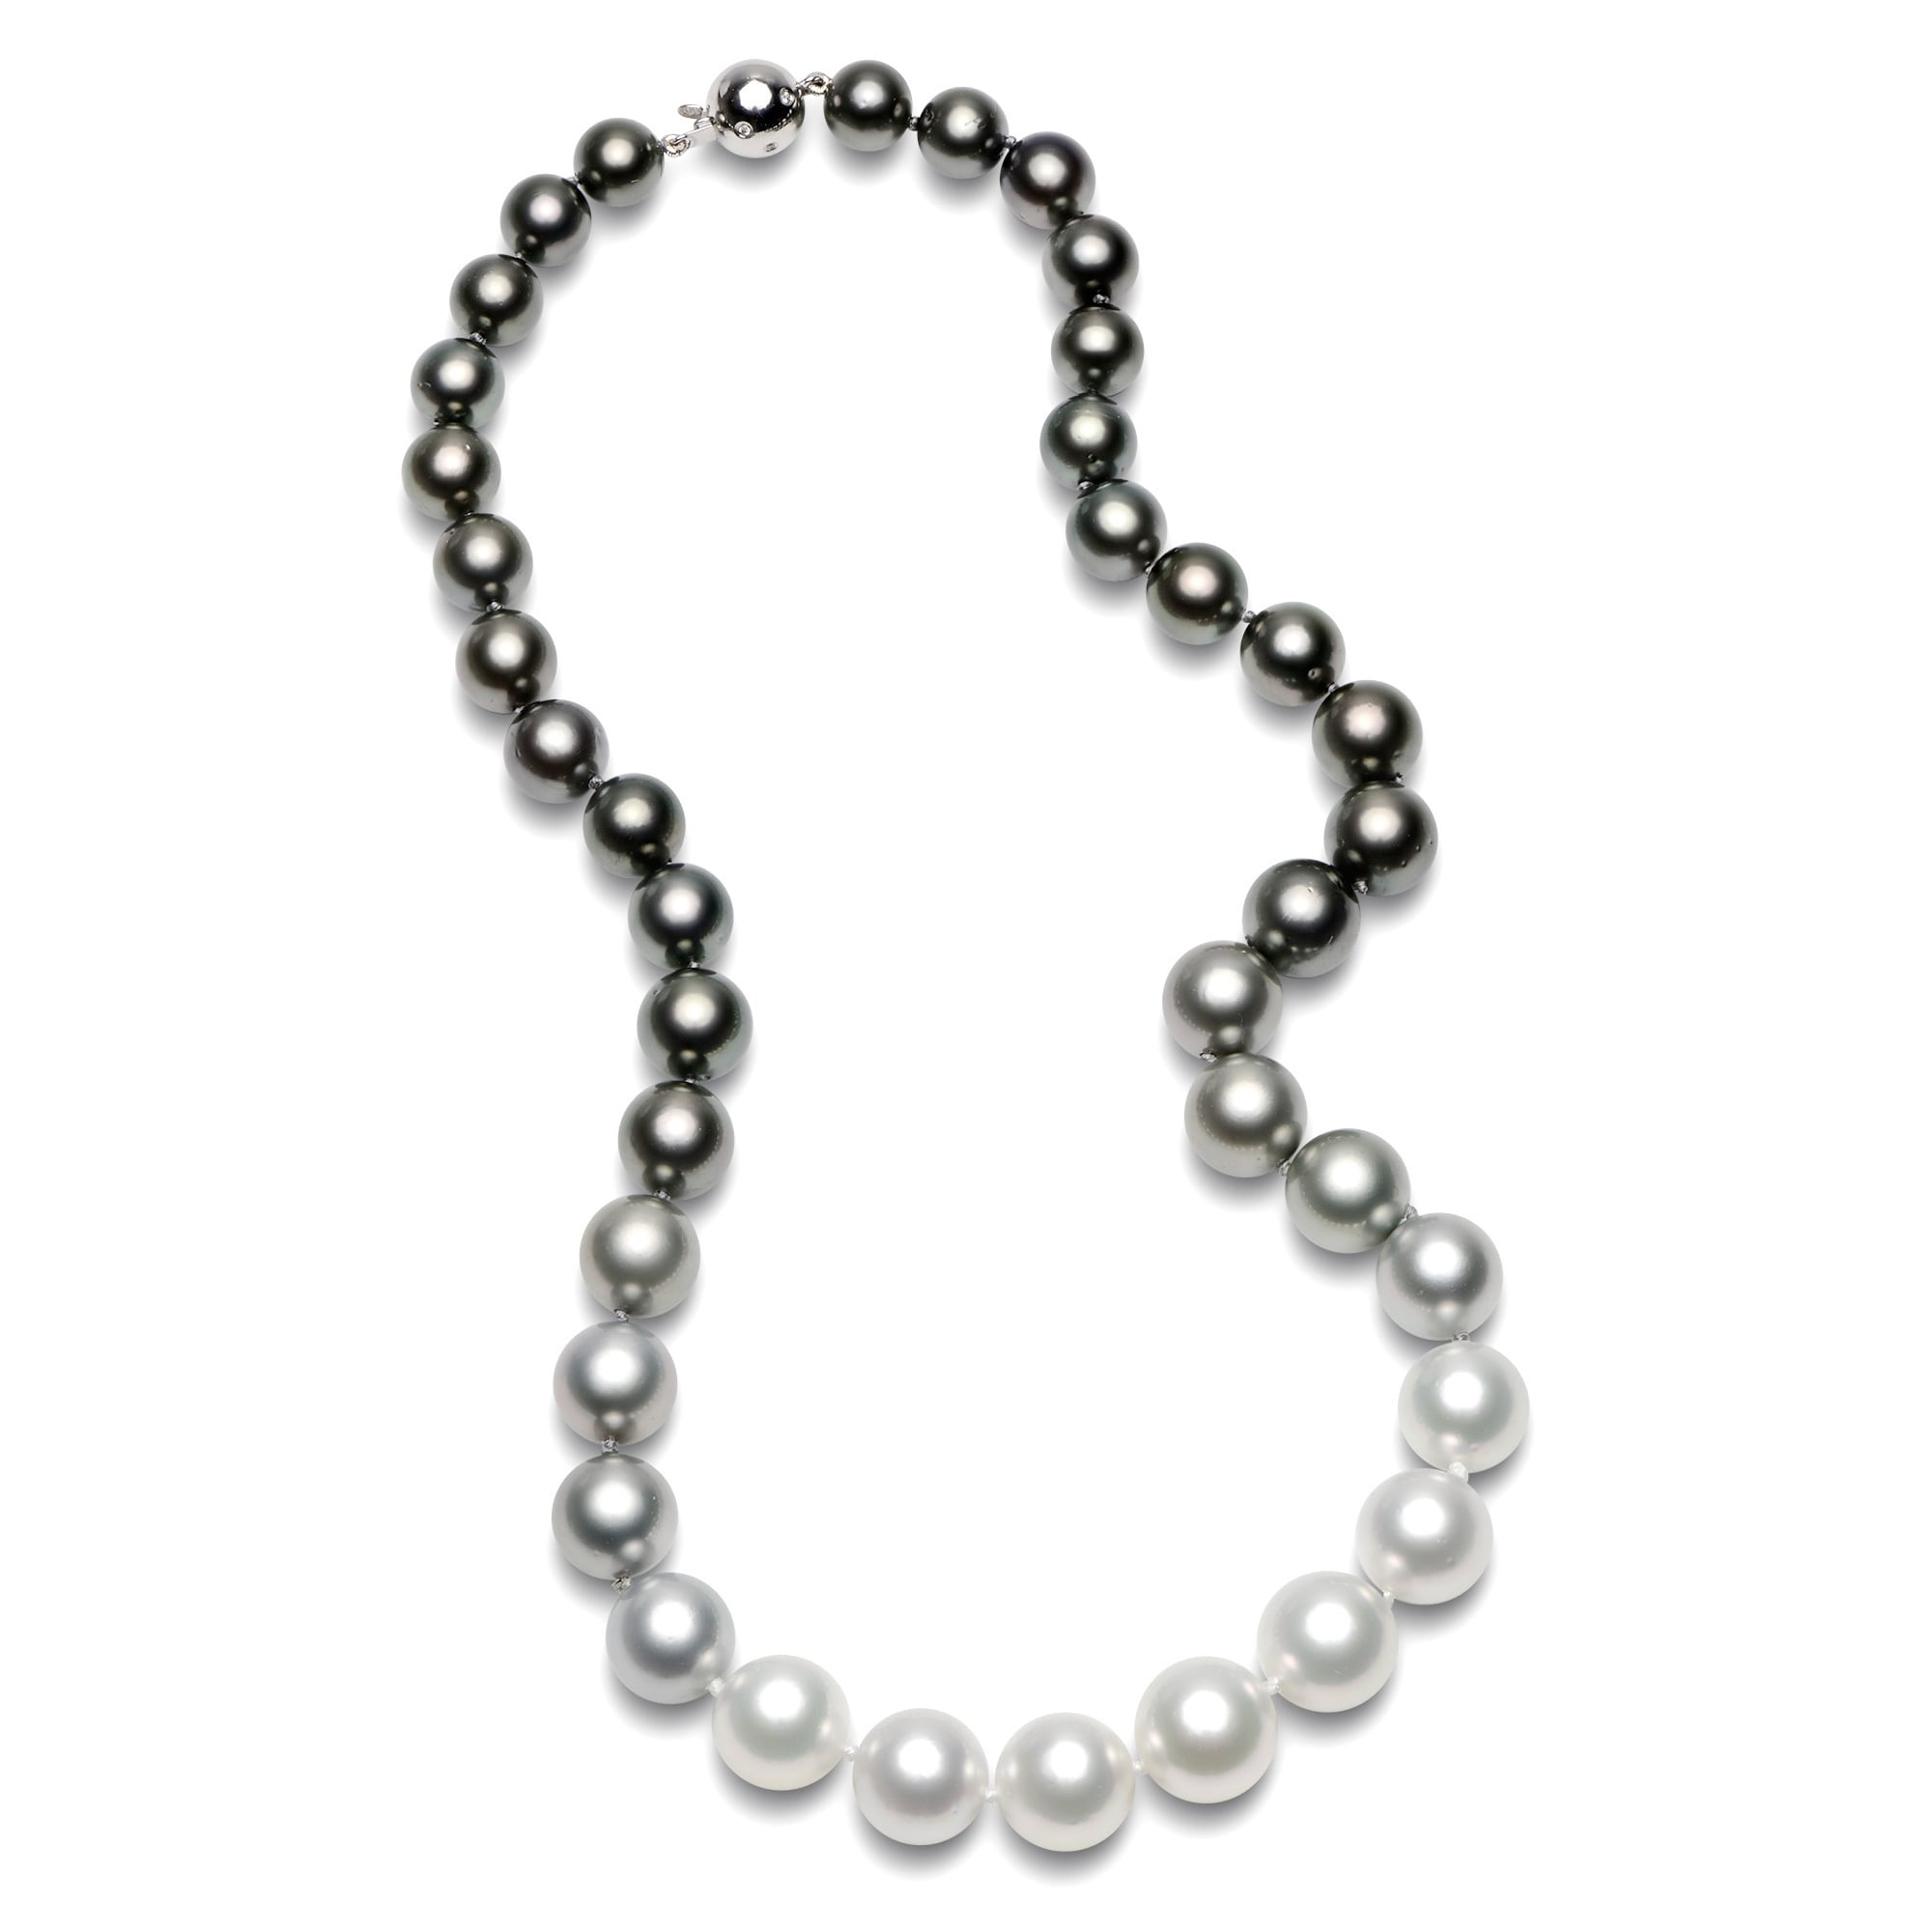 pearl malcolm collectiondropcollectiondropcollectiondrop betts primavera products dsc gallery necklace pink